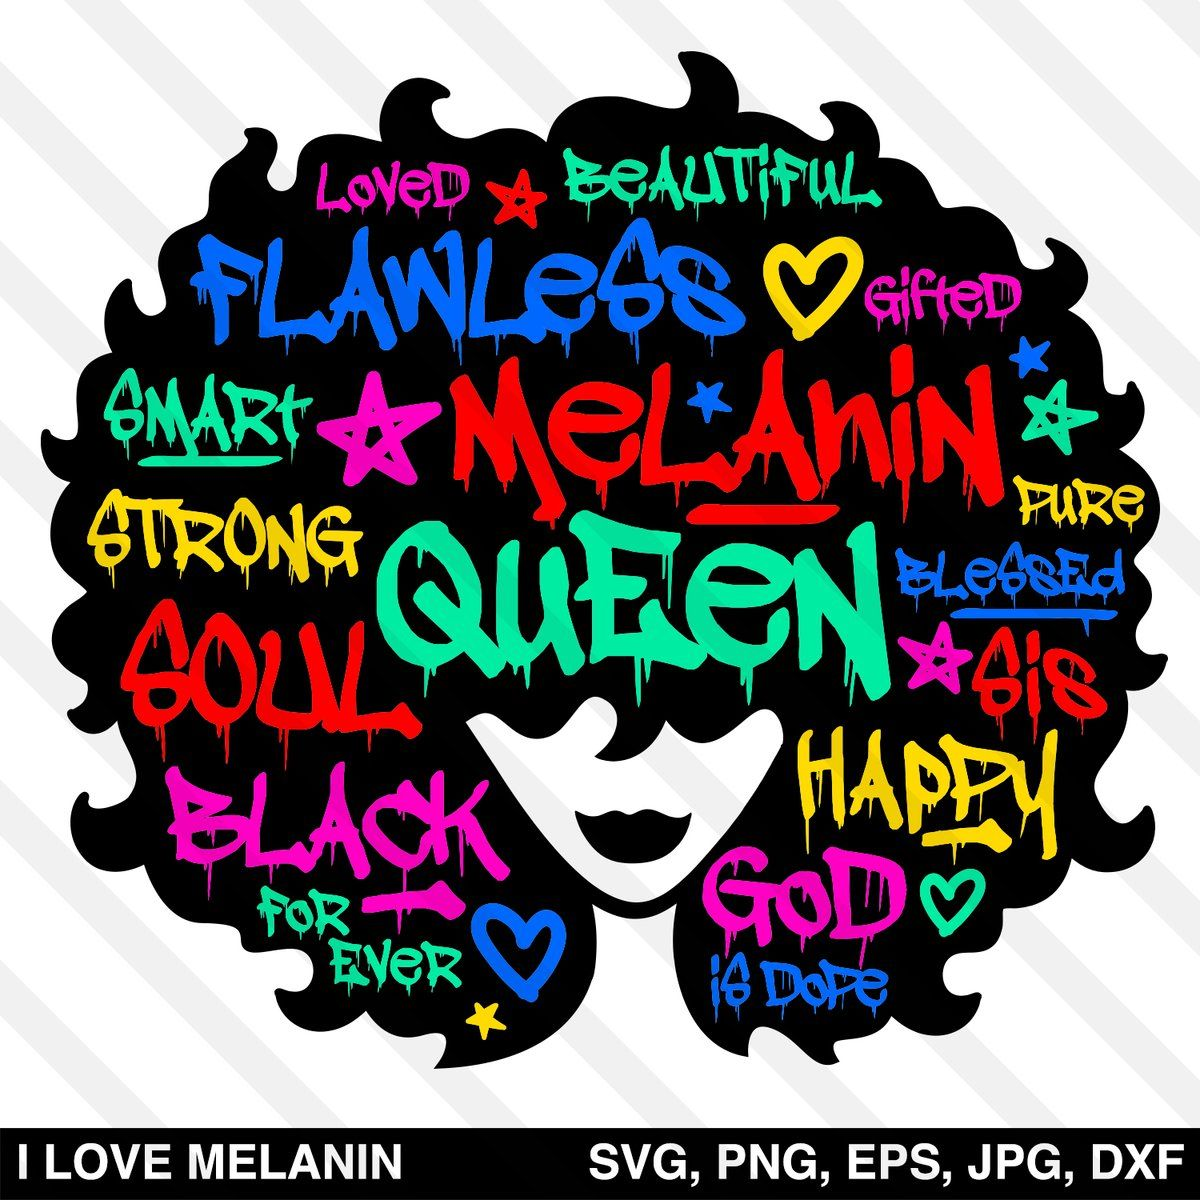 Graffiti Black Queen Afro Woman SVG in 2020 How to make